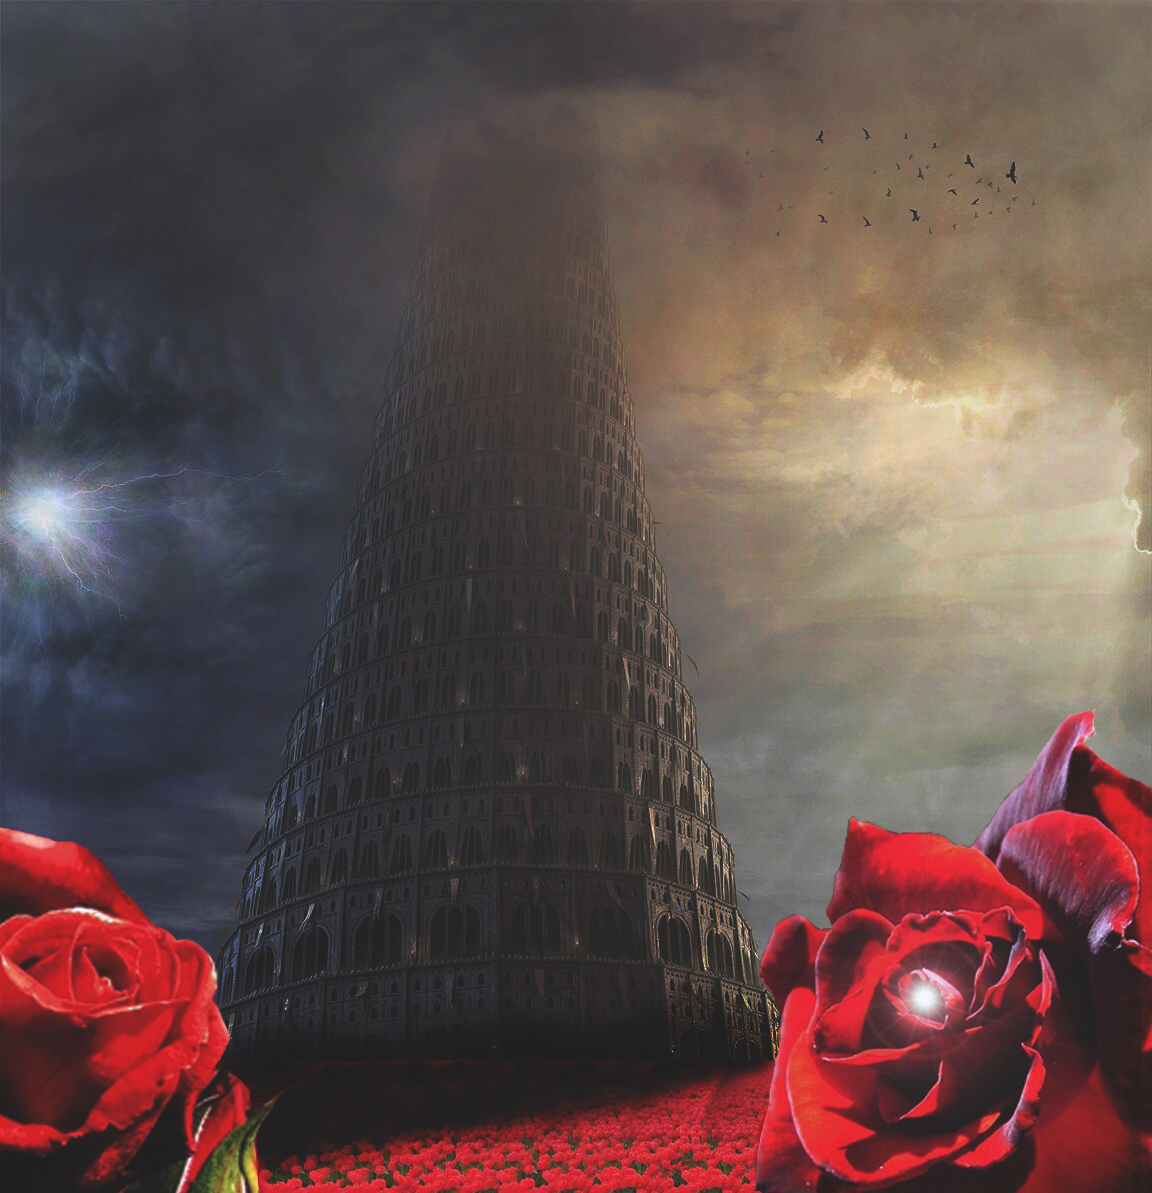 http://orig08.deviantart.net/2645/f/2008/240/a/9/the_dark_tower_by_lilbenji25.jpg